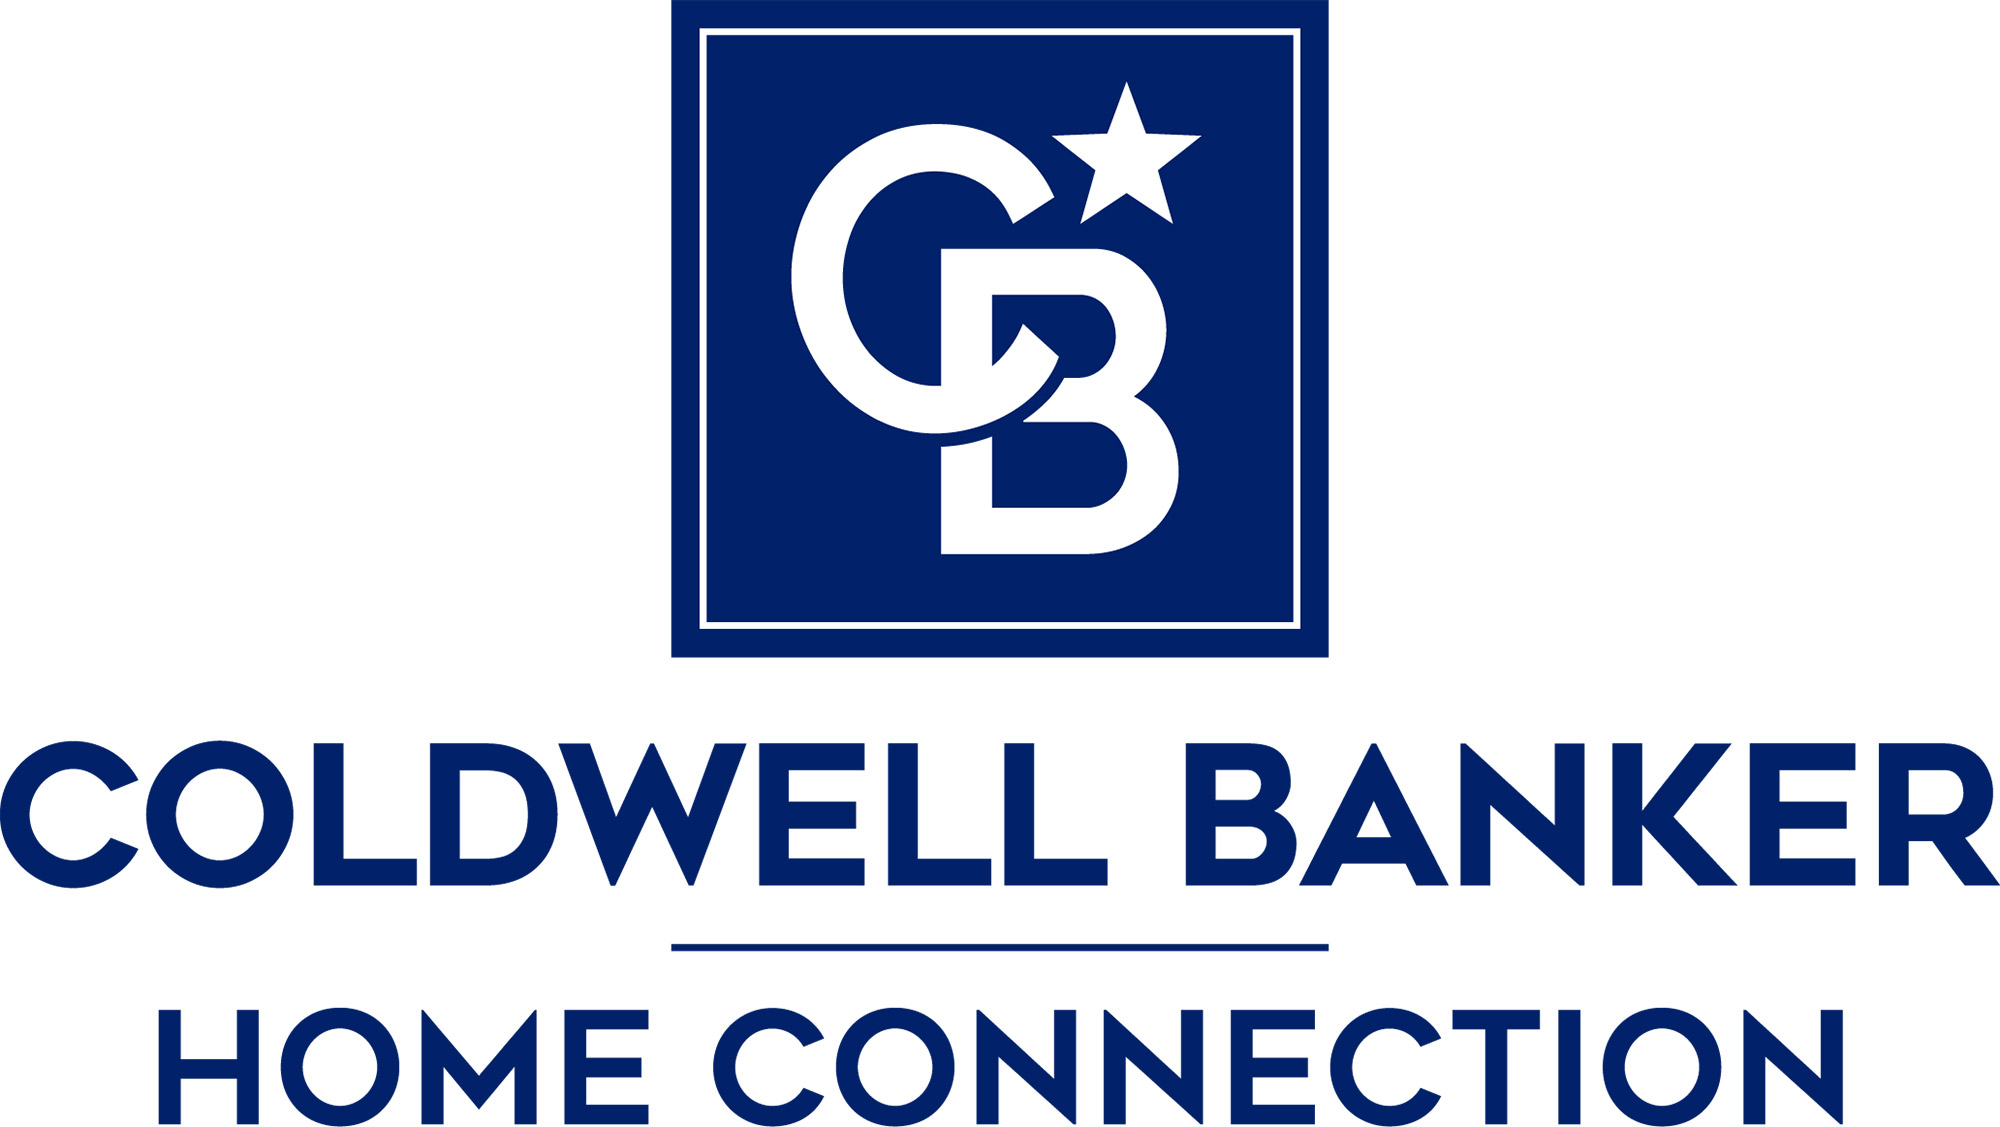 Jason Sarazine - Coldwell Banker Home Connection Logo